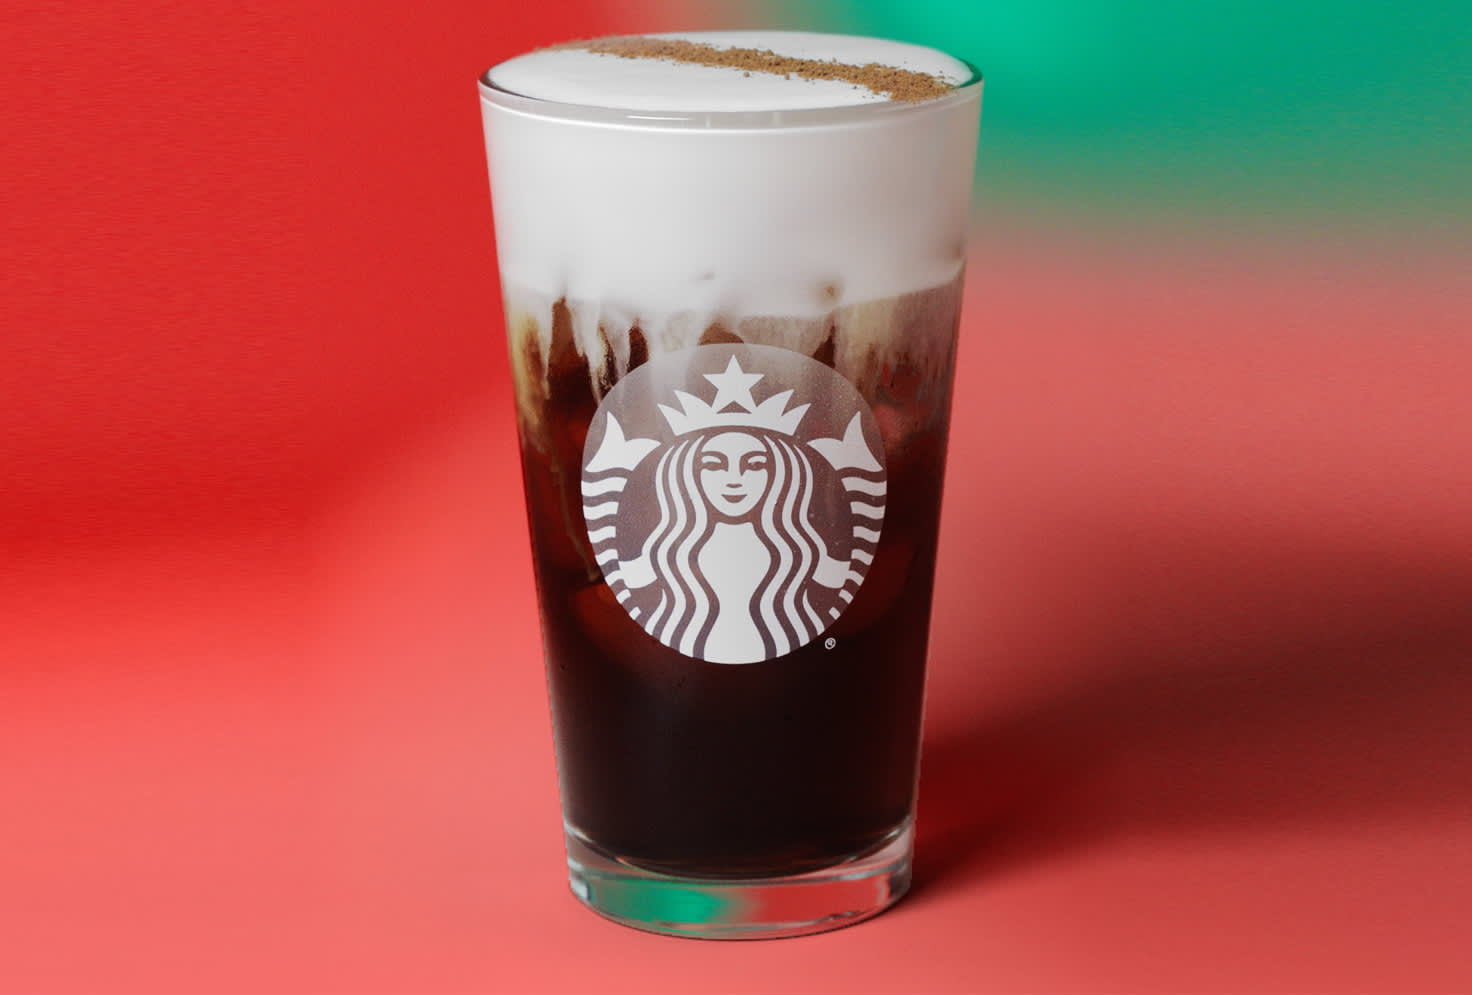 Starbucks launches holiday cold brew drink as the iced beverage's popularity soars